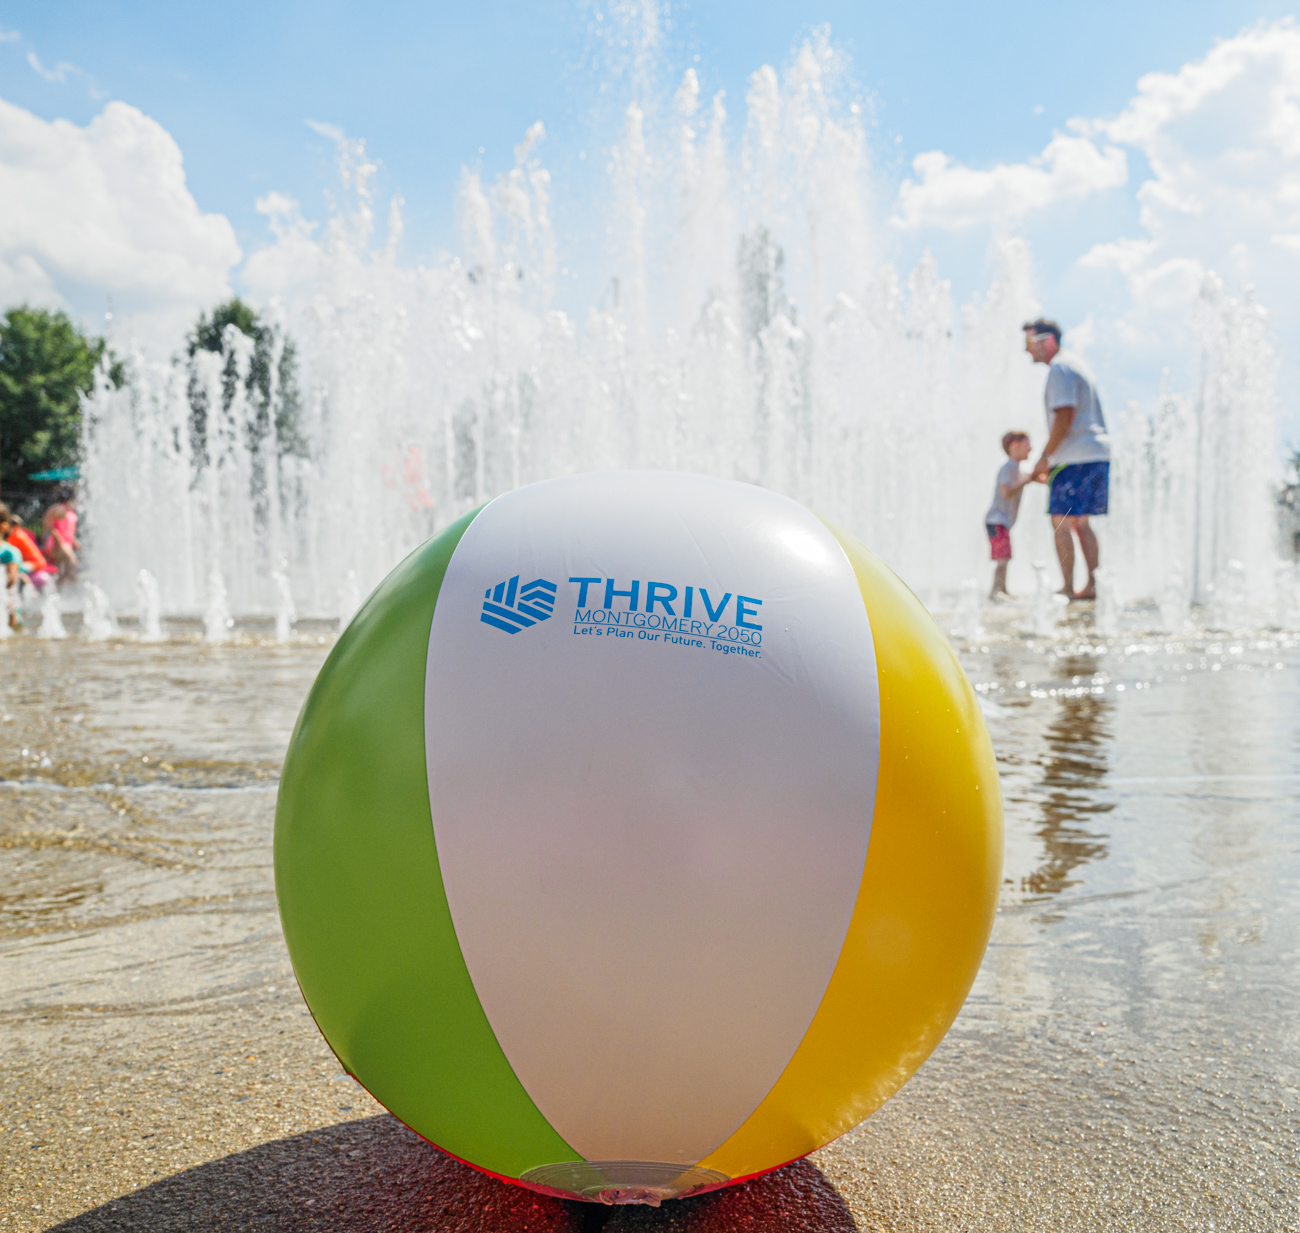 Thrive Montgomery Day 3 at the Germantown Recreational Park Splash Park and mini golf in Germantown held June 28, 2019.